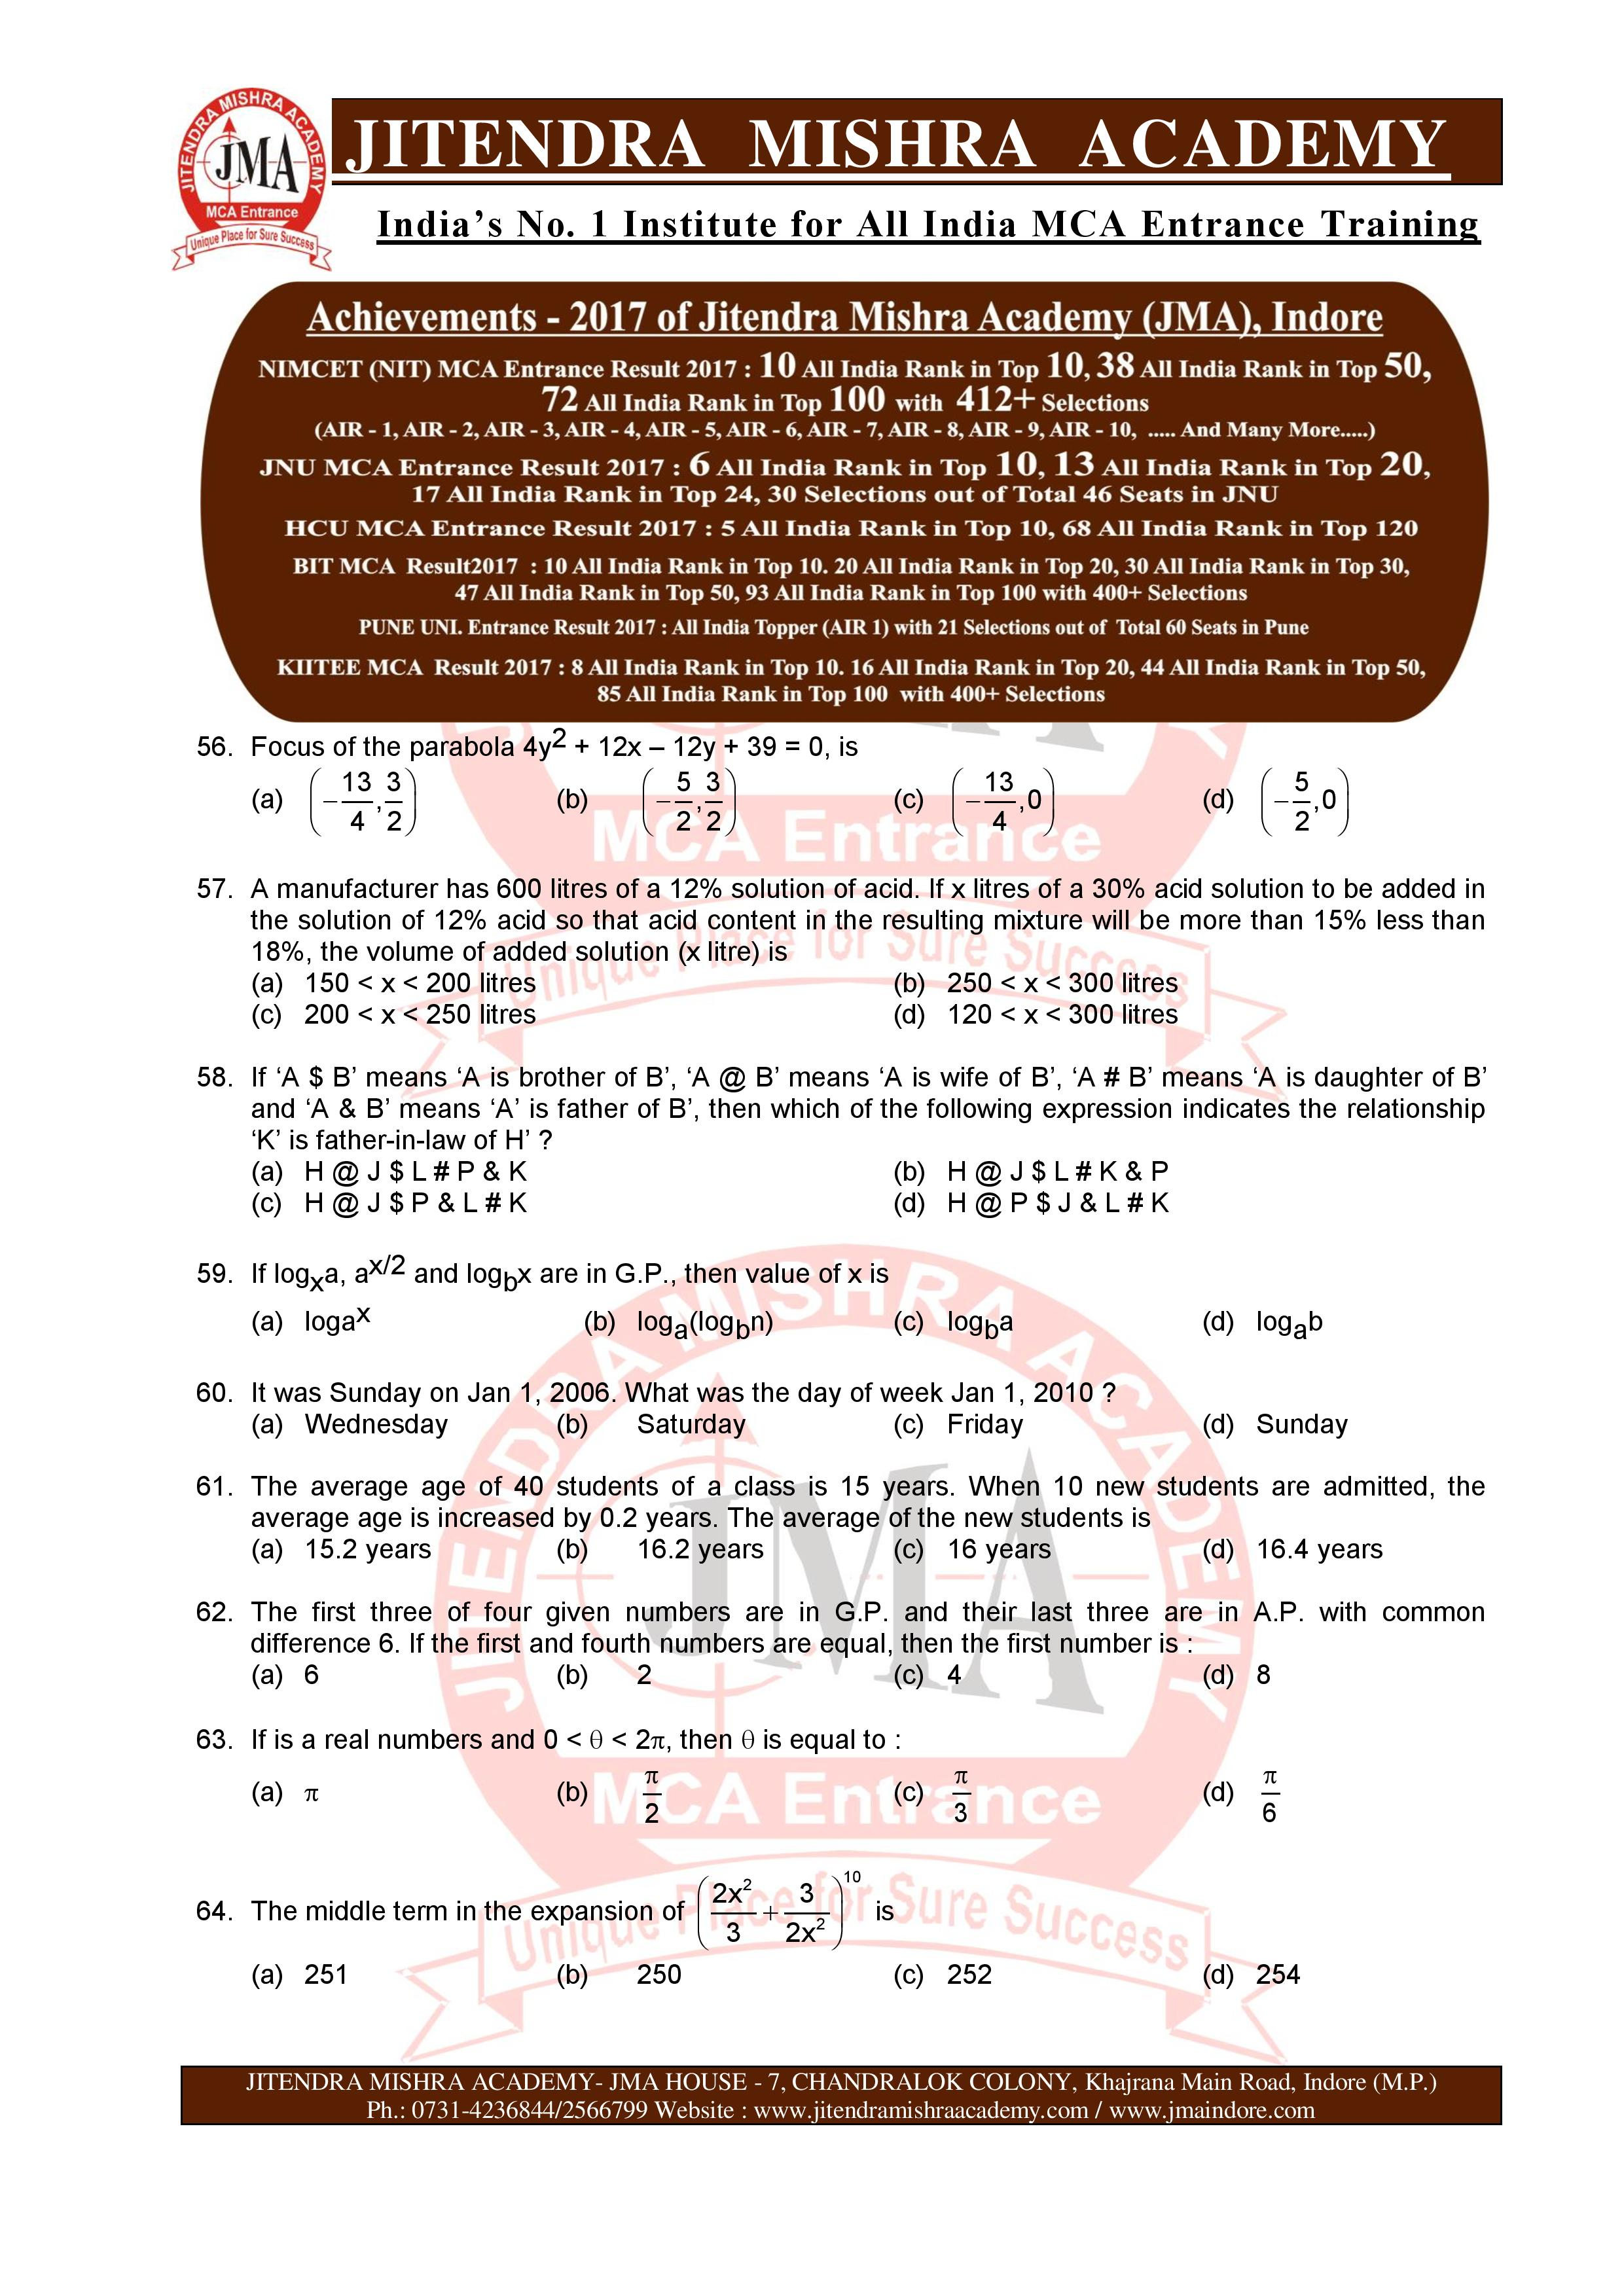 BHU MCA 2019 QUESTION PAPER-page-010